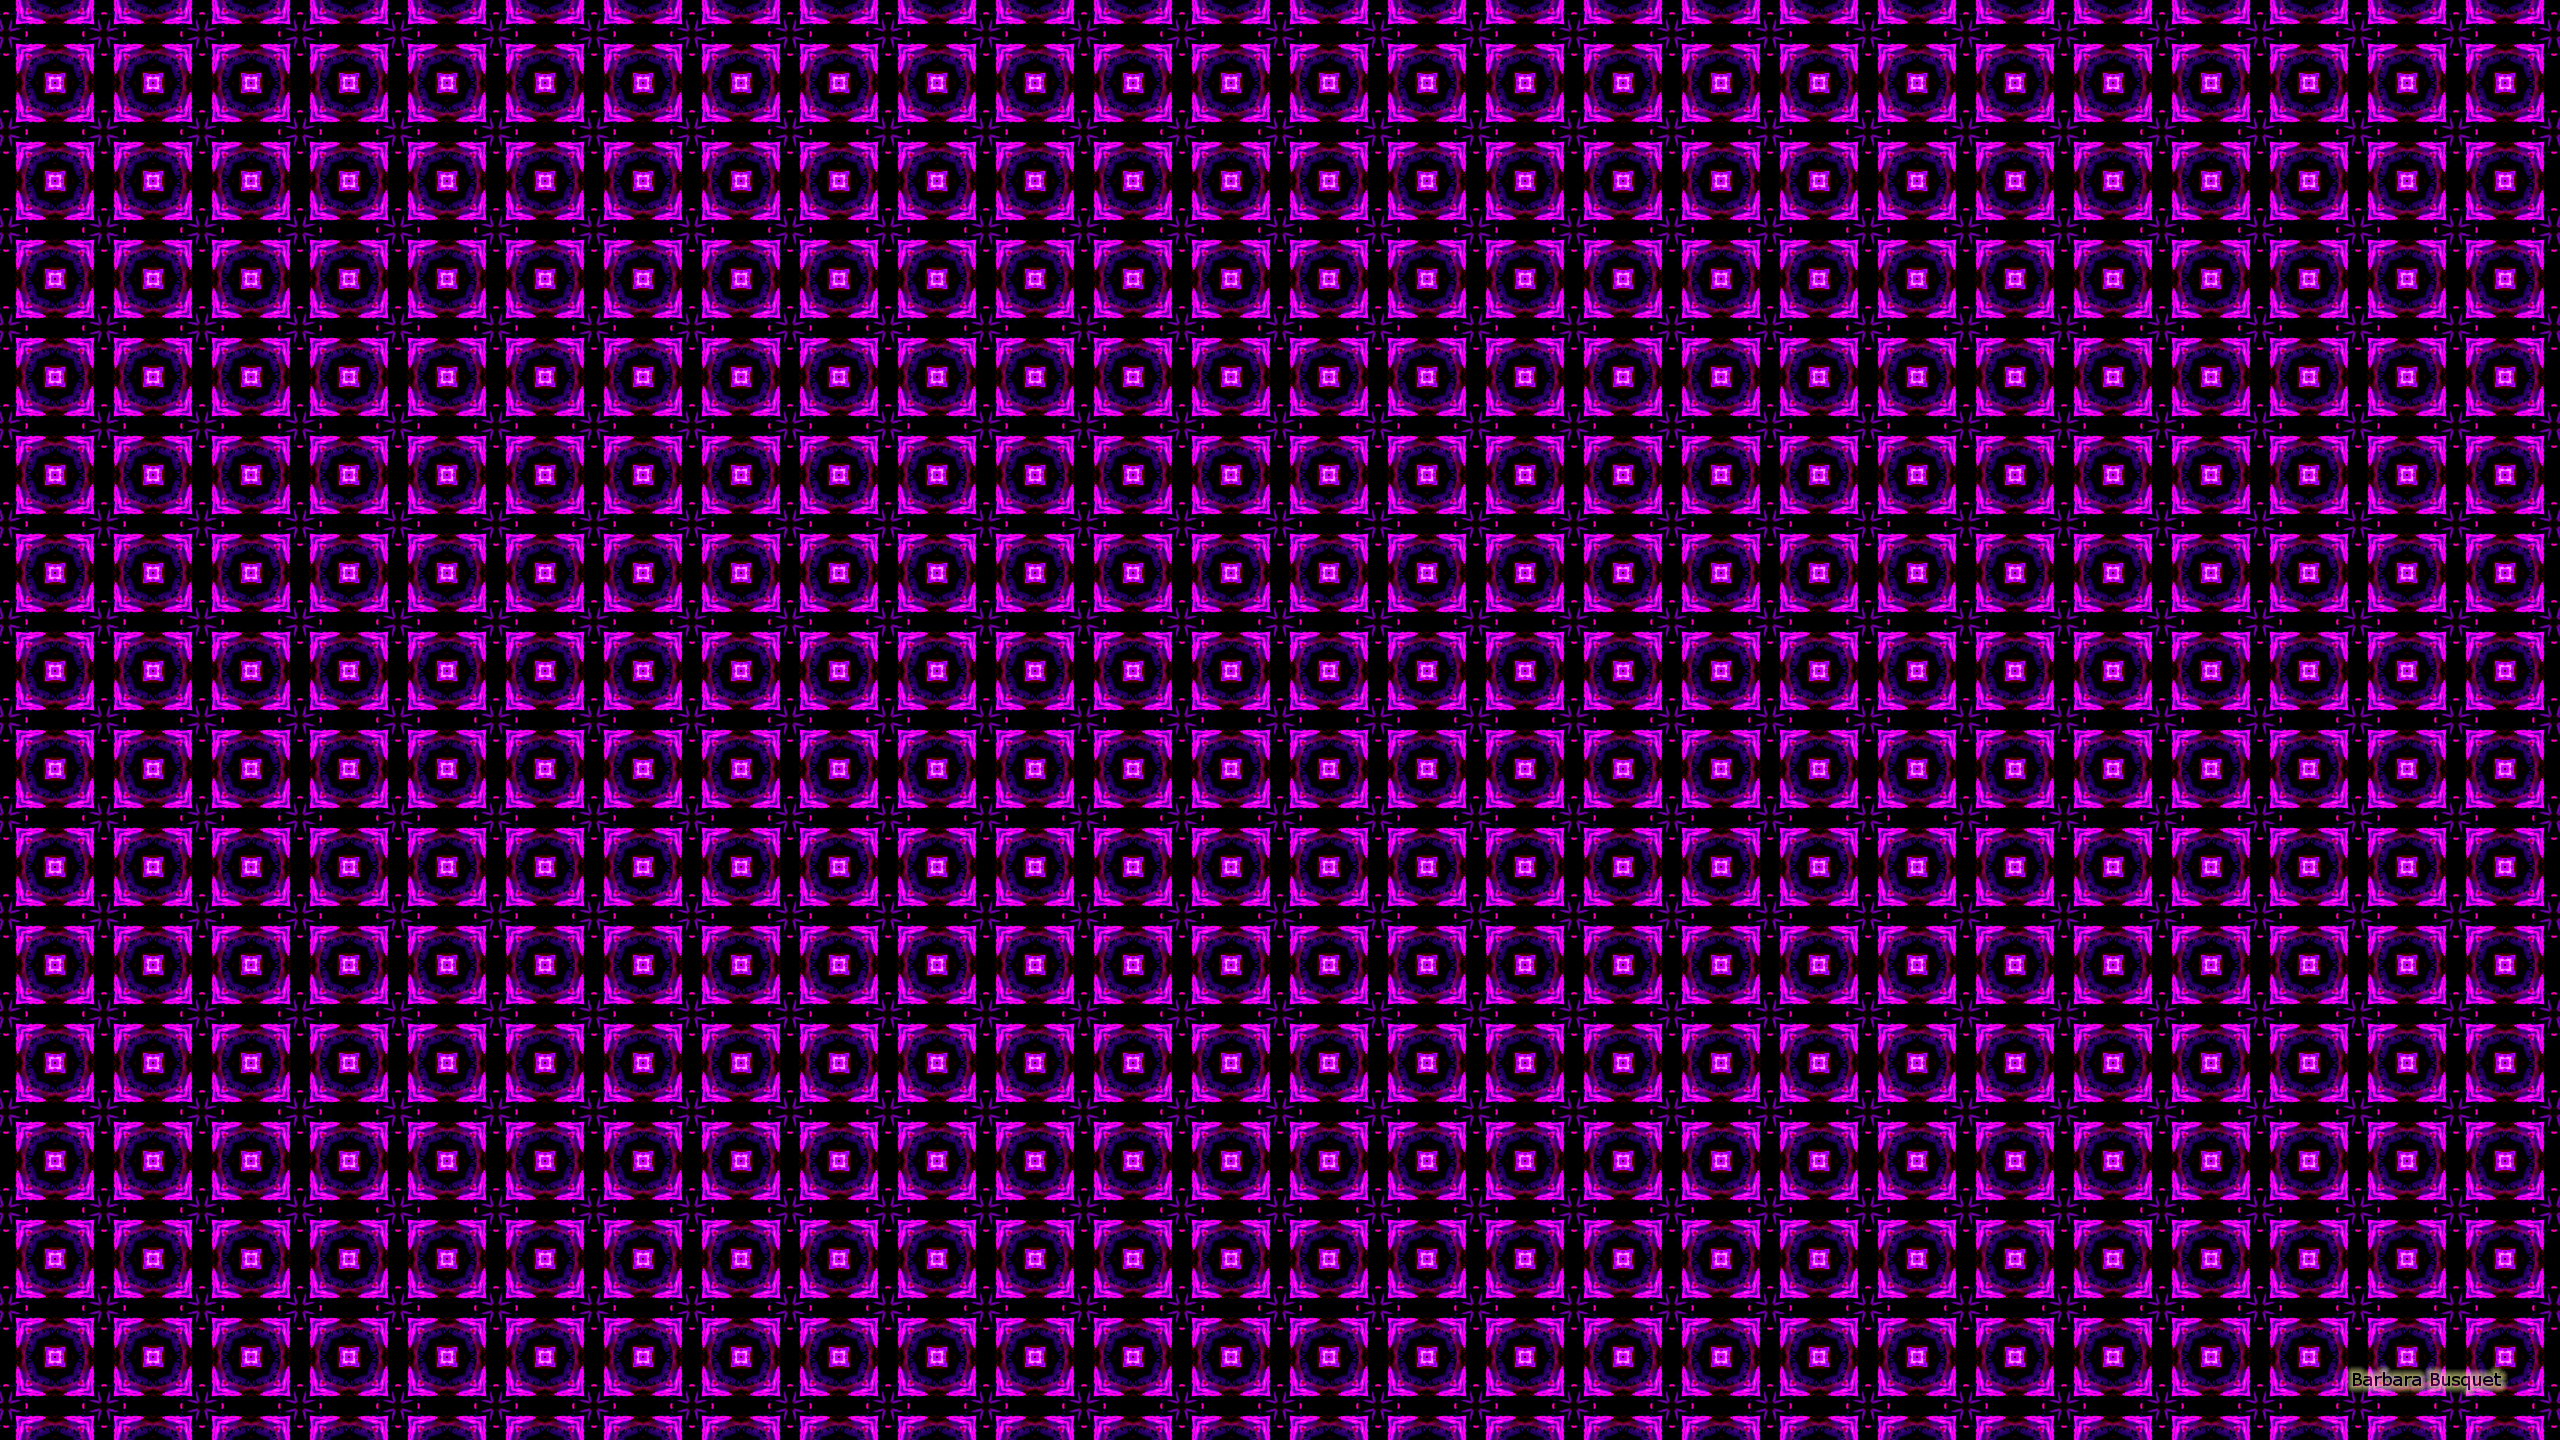 Square pattern wallpapers barbaras hd wallpapers for Dark blue and gold wallpaper